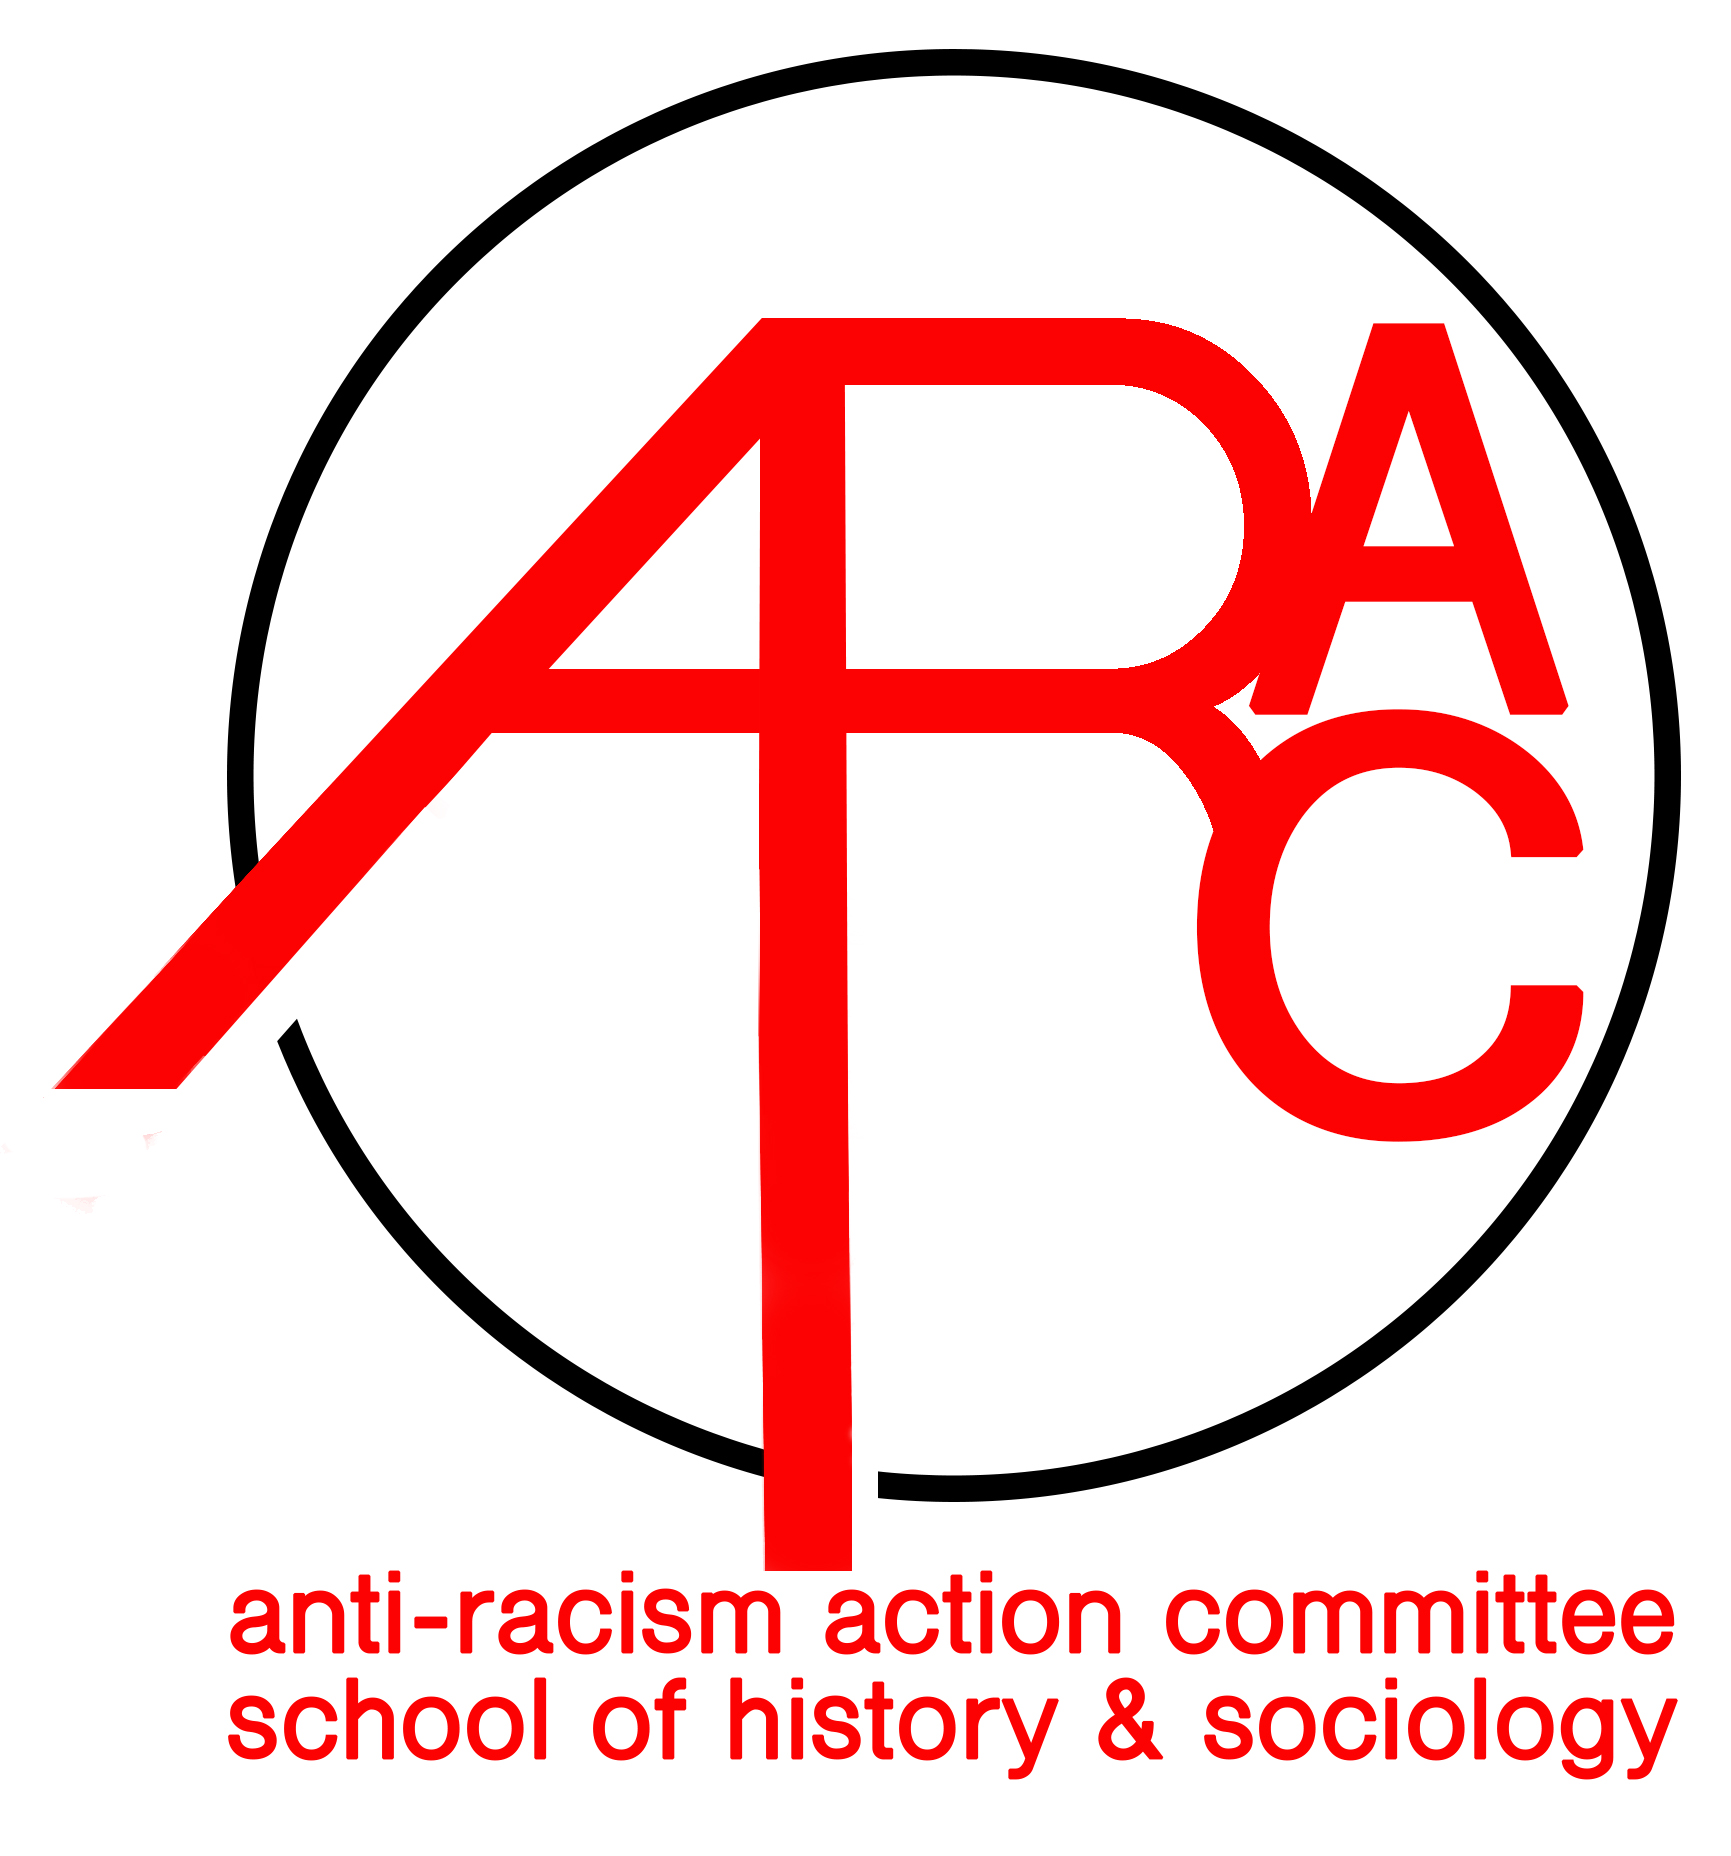 Logo for the HSOC Anti-Racism Action Committee